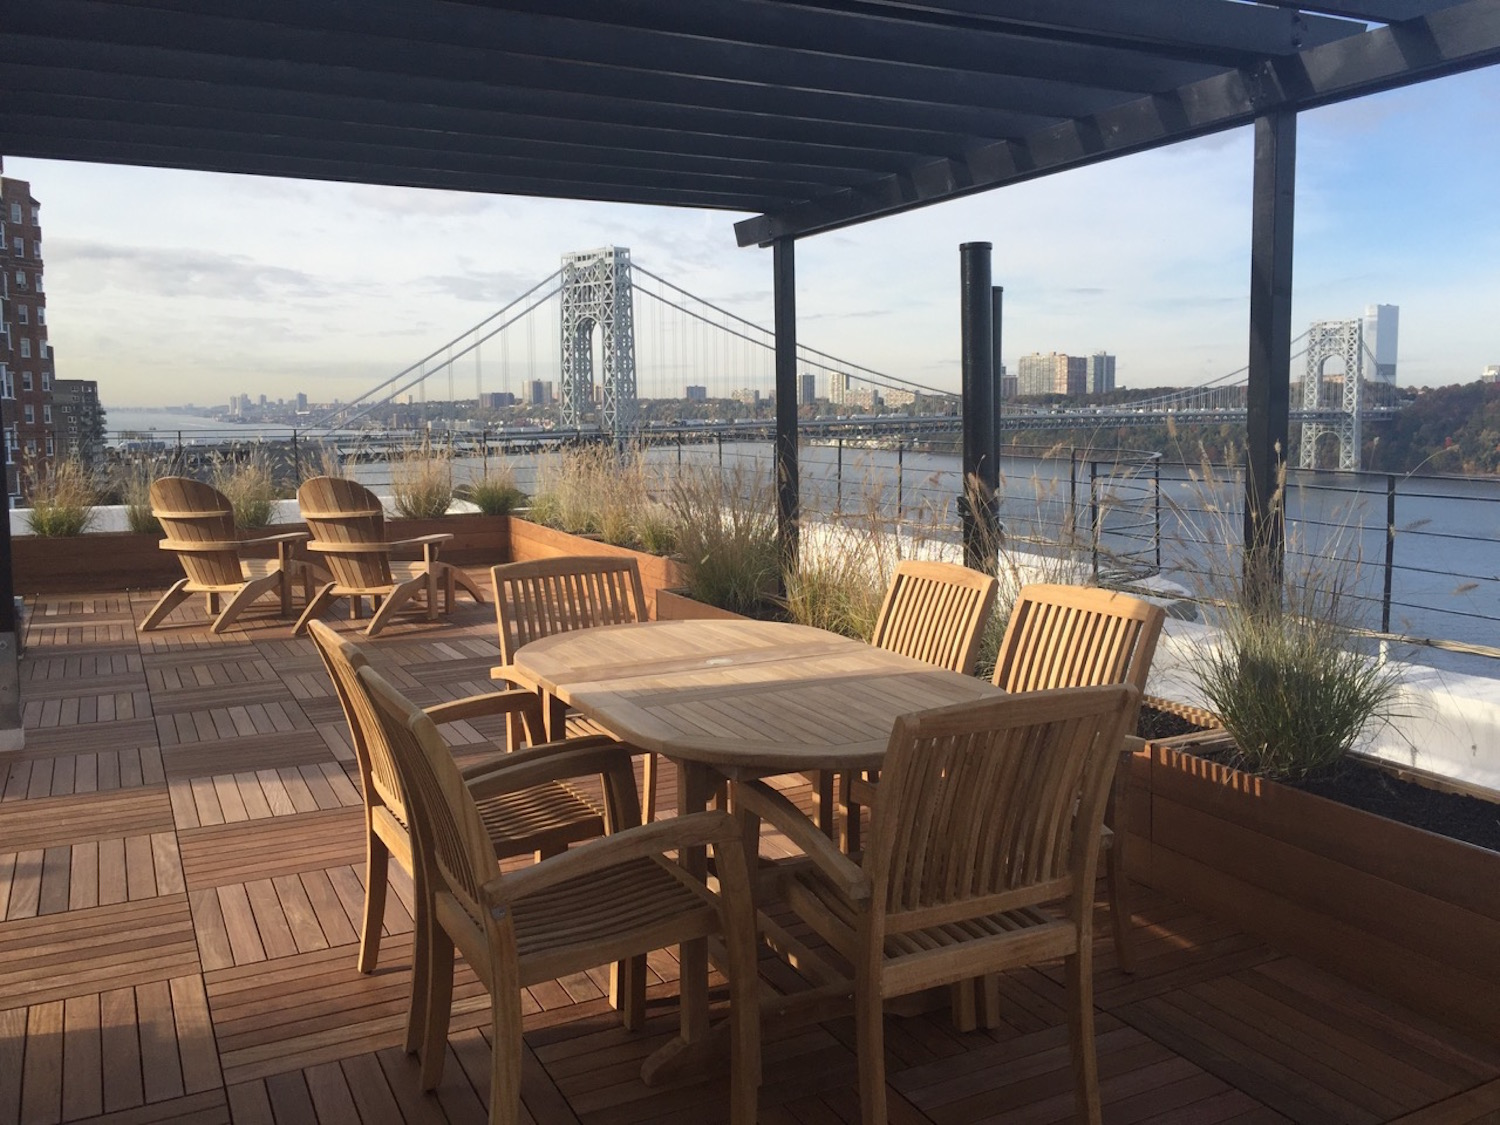 NYC Rooftop Decks, Gardens, Roof Decks | New York Roofscapes